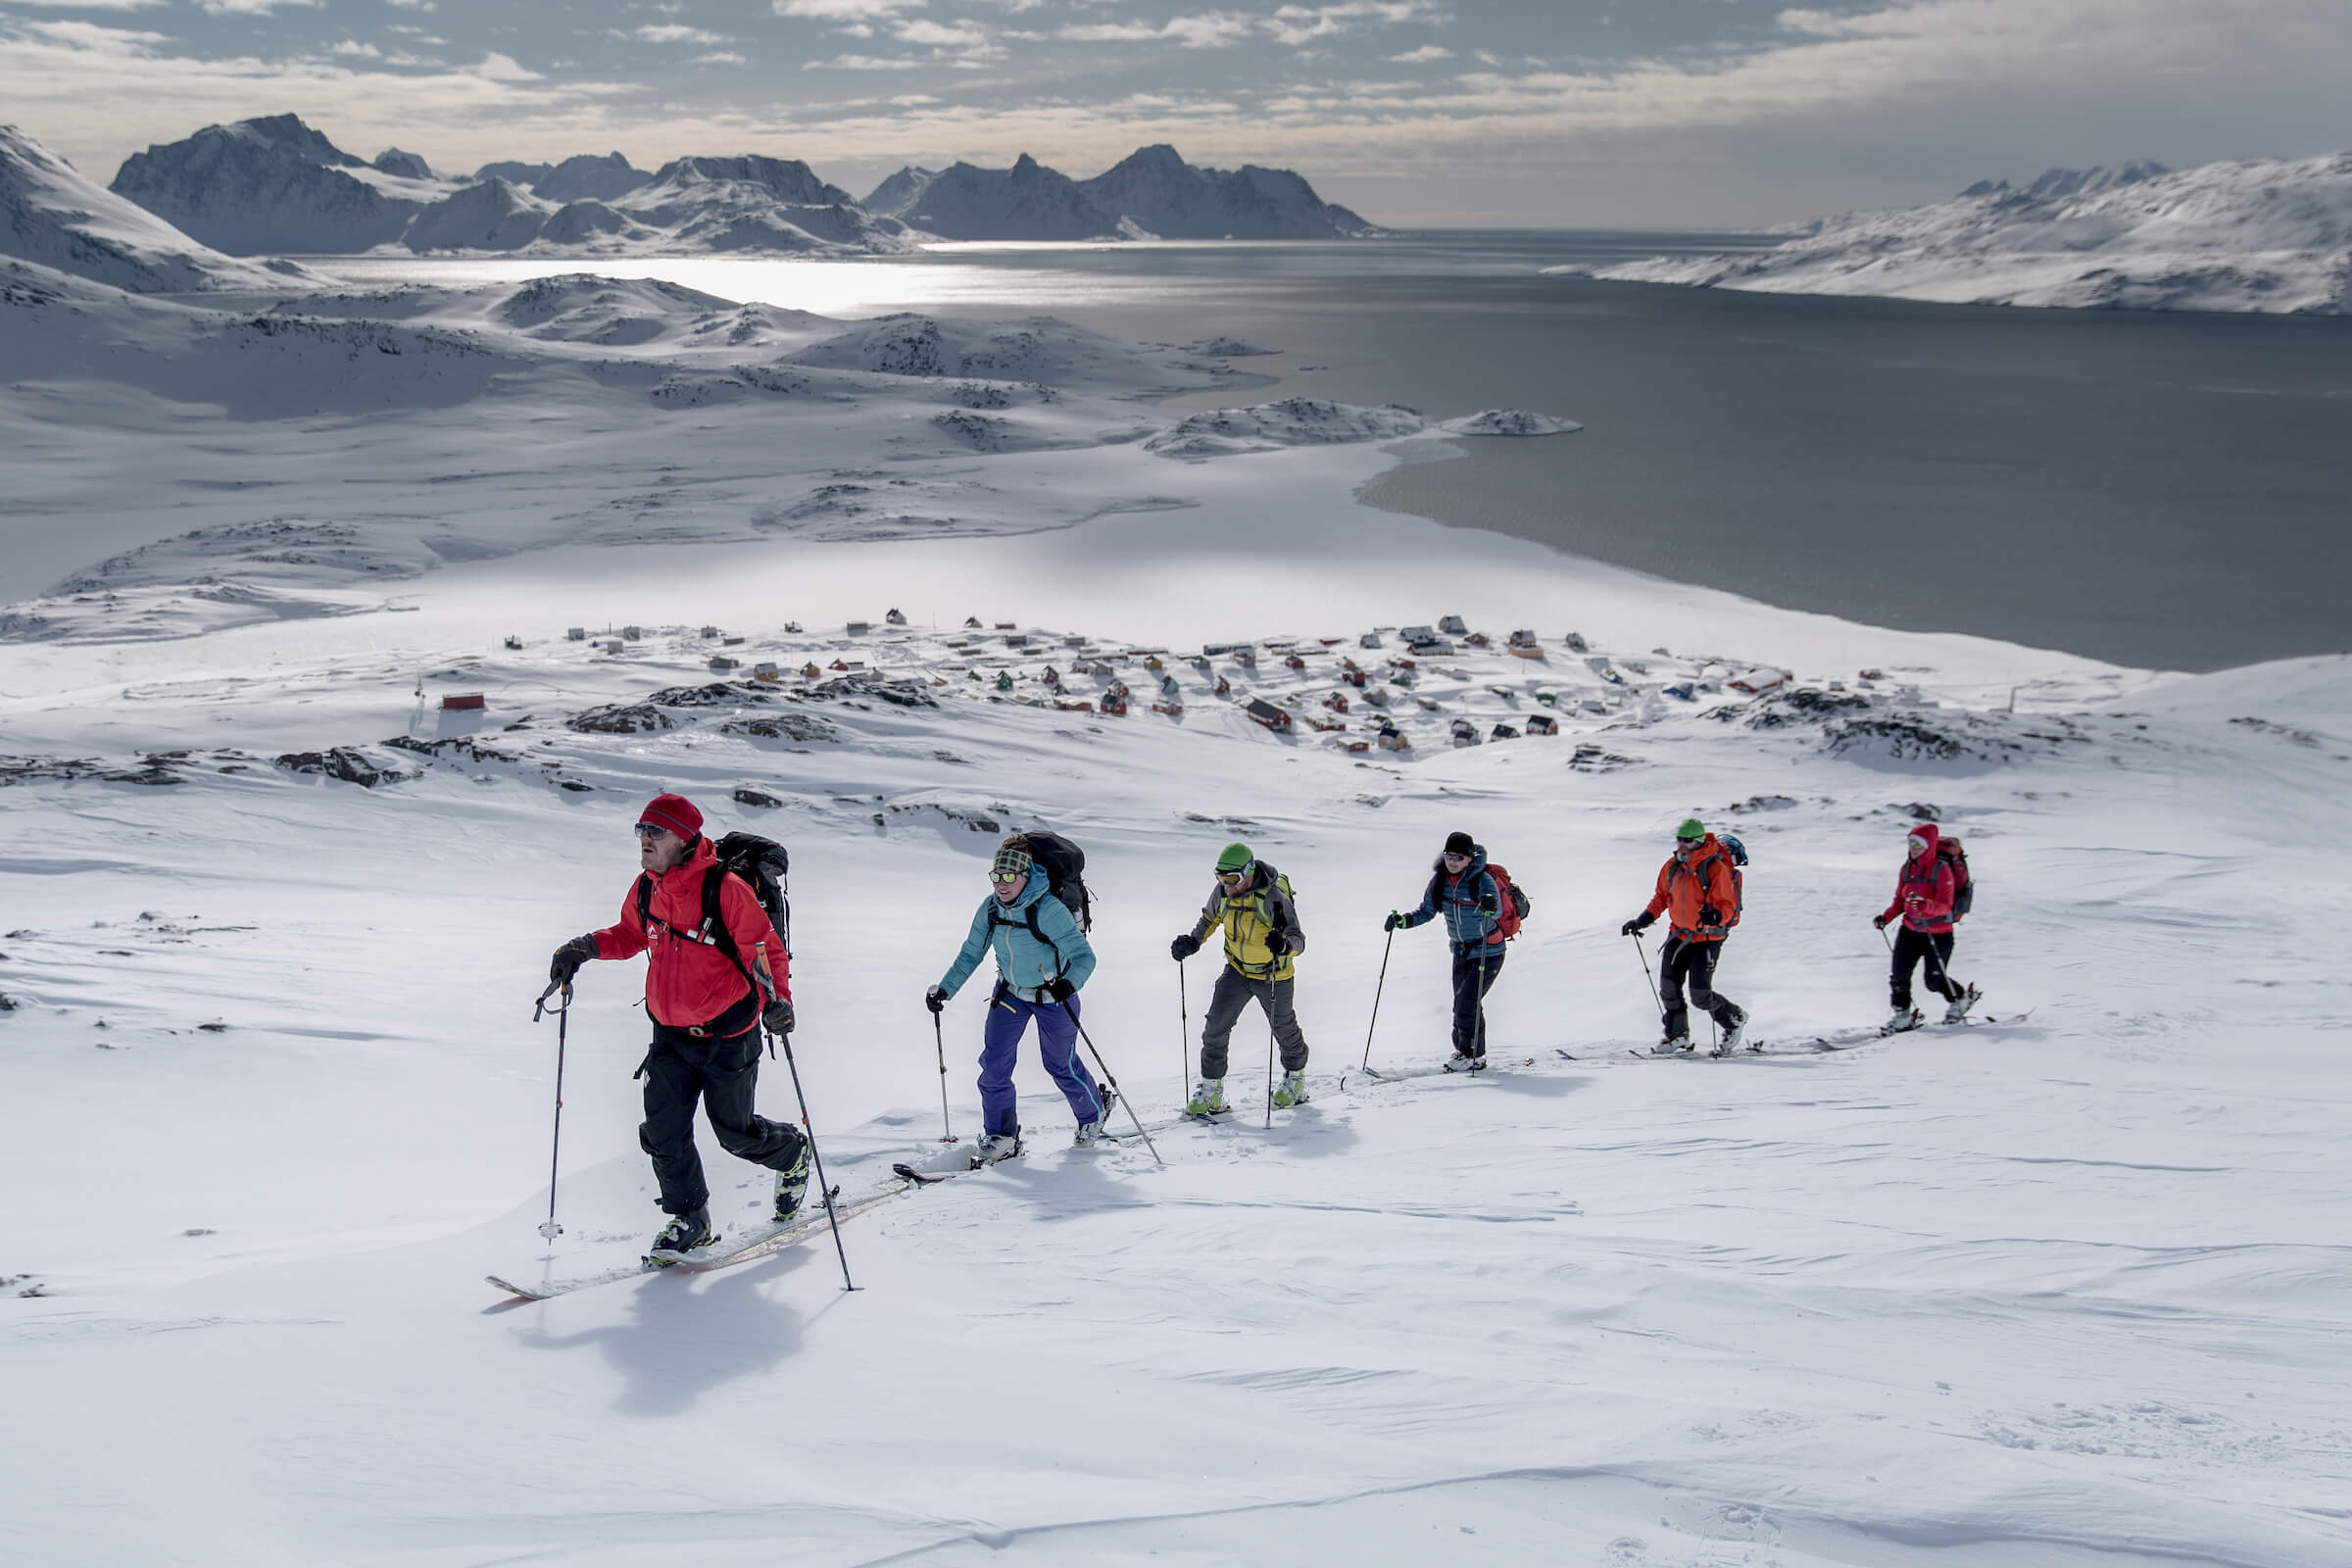 A group of skiers climbing a mountain near Kulusuk on a ski touring trip in East Greenland. Photo by Mads Pihl, Visit Greenland